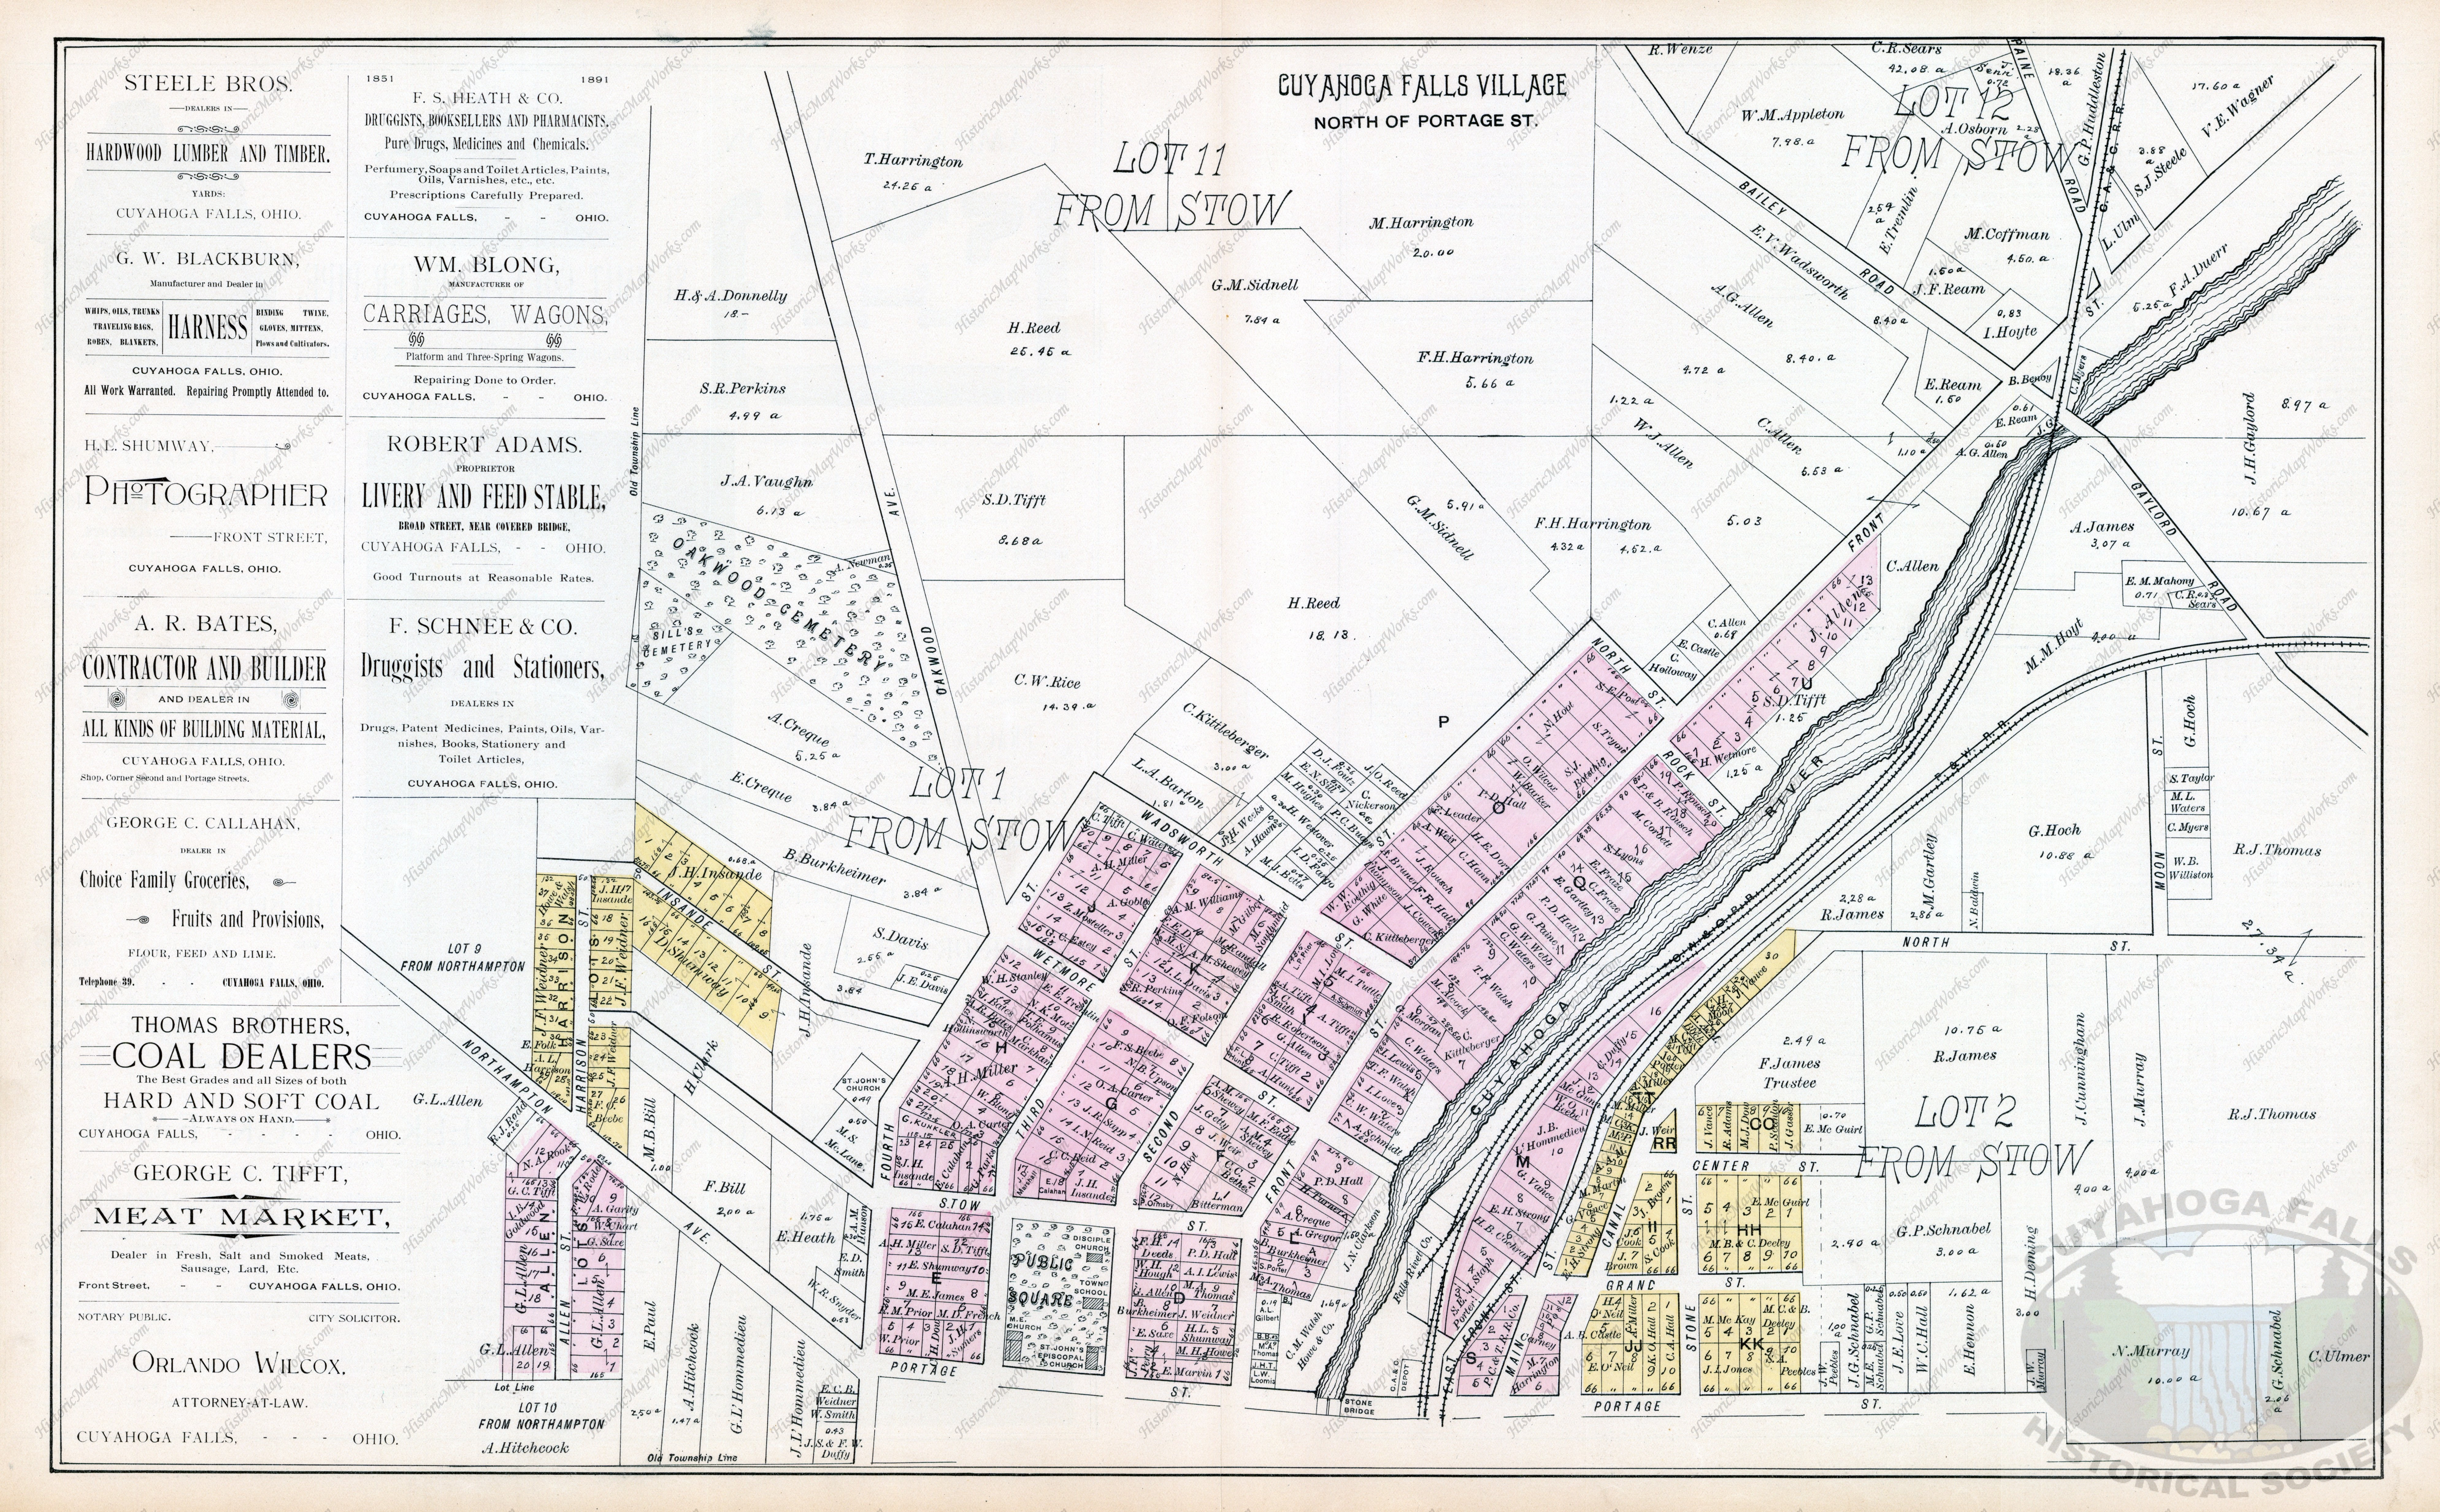 1891 Map Of Cuyahoga Falls Northampton Stow Cuyahoga